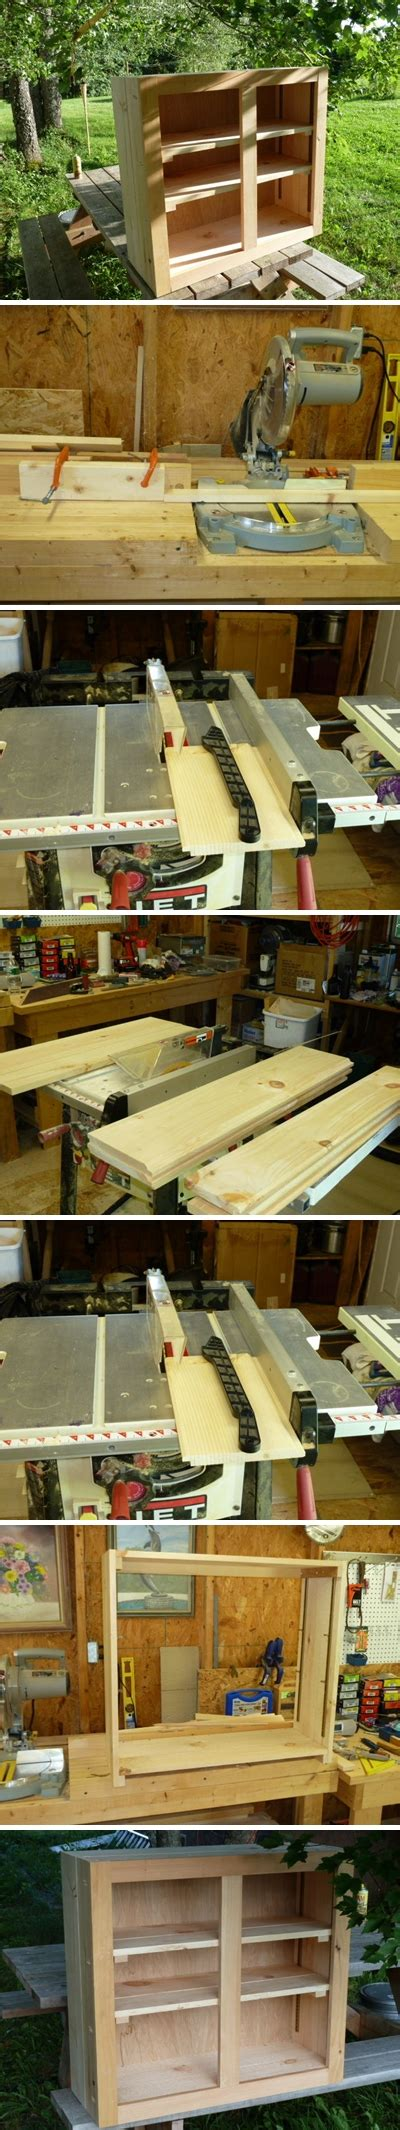 how to build kitchen cabinets step by step how to build your own kitchen cabinets step by step diy